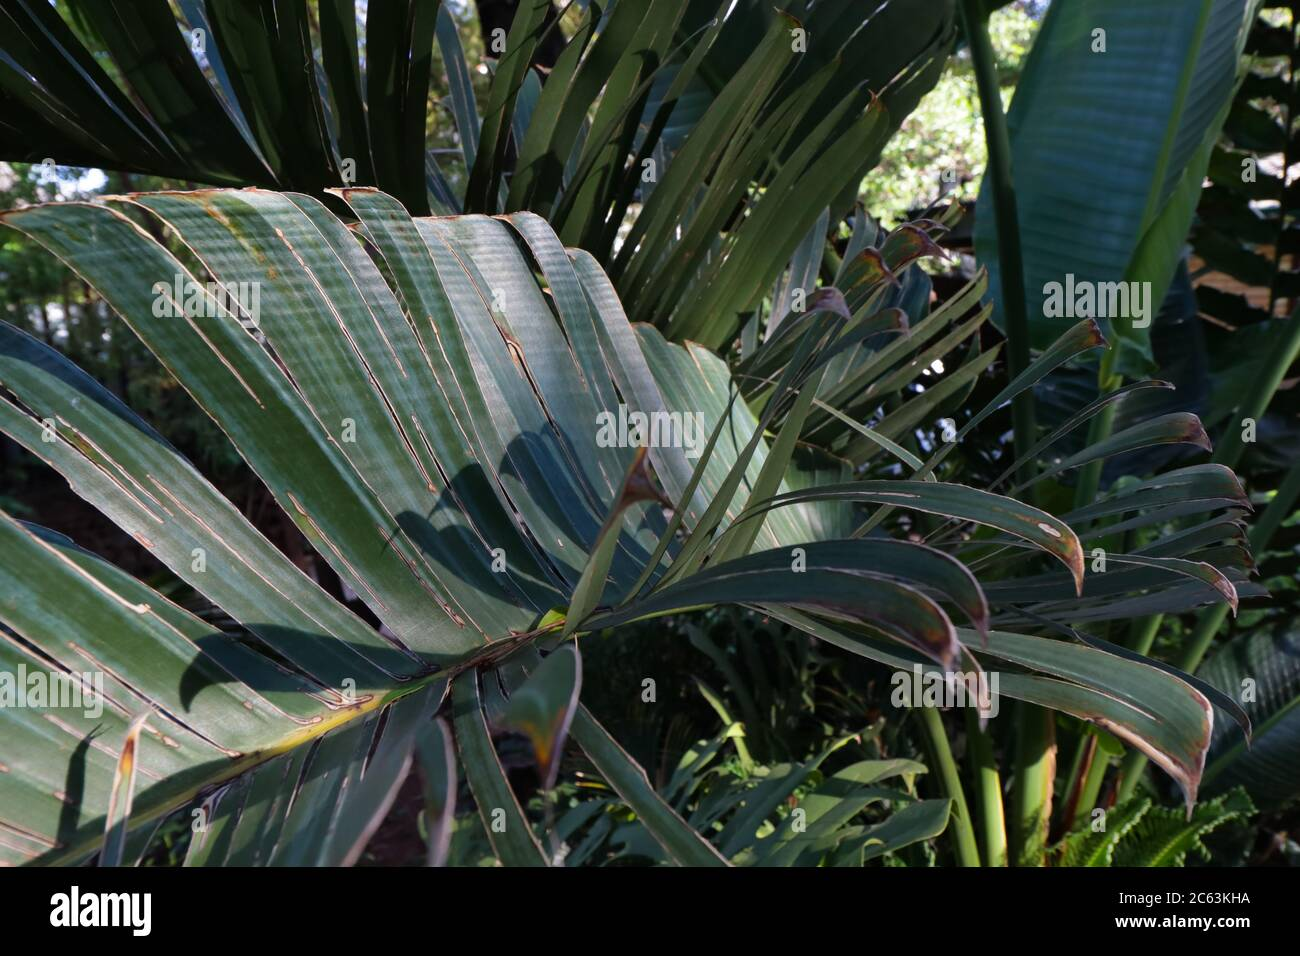 Tropical Palm Leaves Greenery Forest Abstract Stock Photo Alamy Many tropical rainforest leaves have a drip tip. alamy